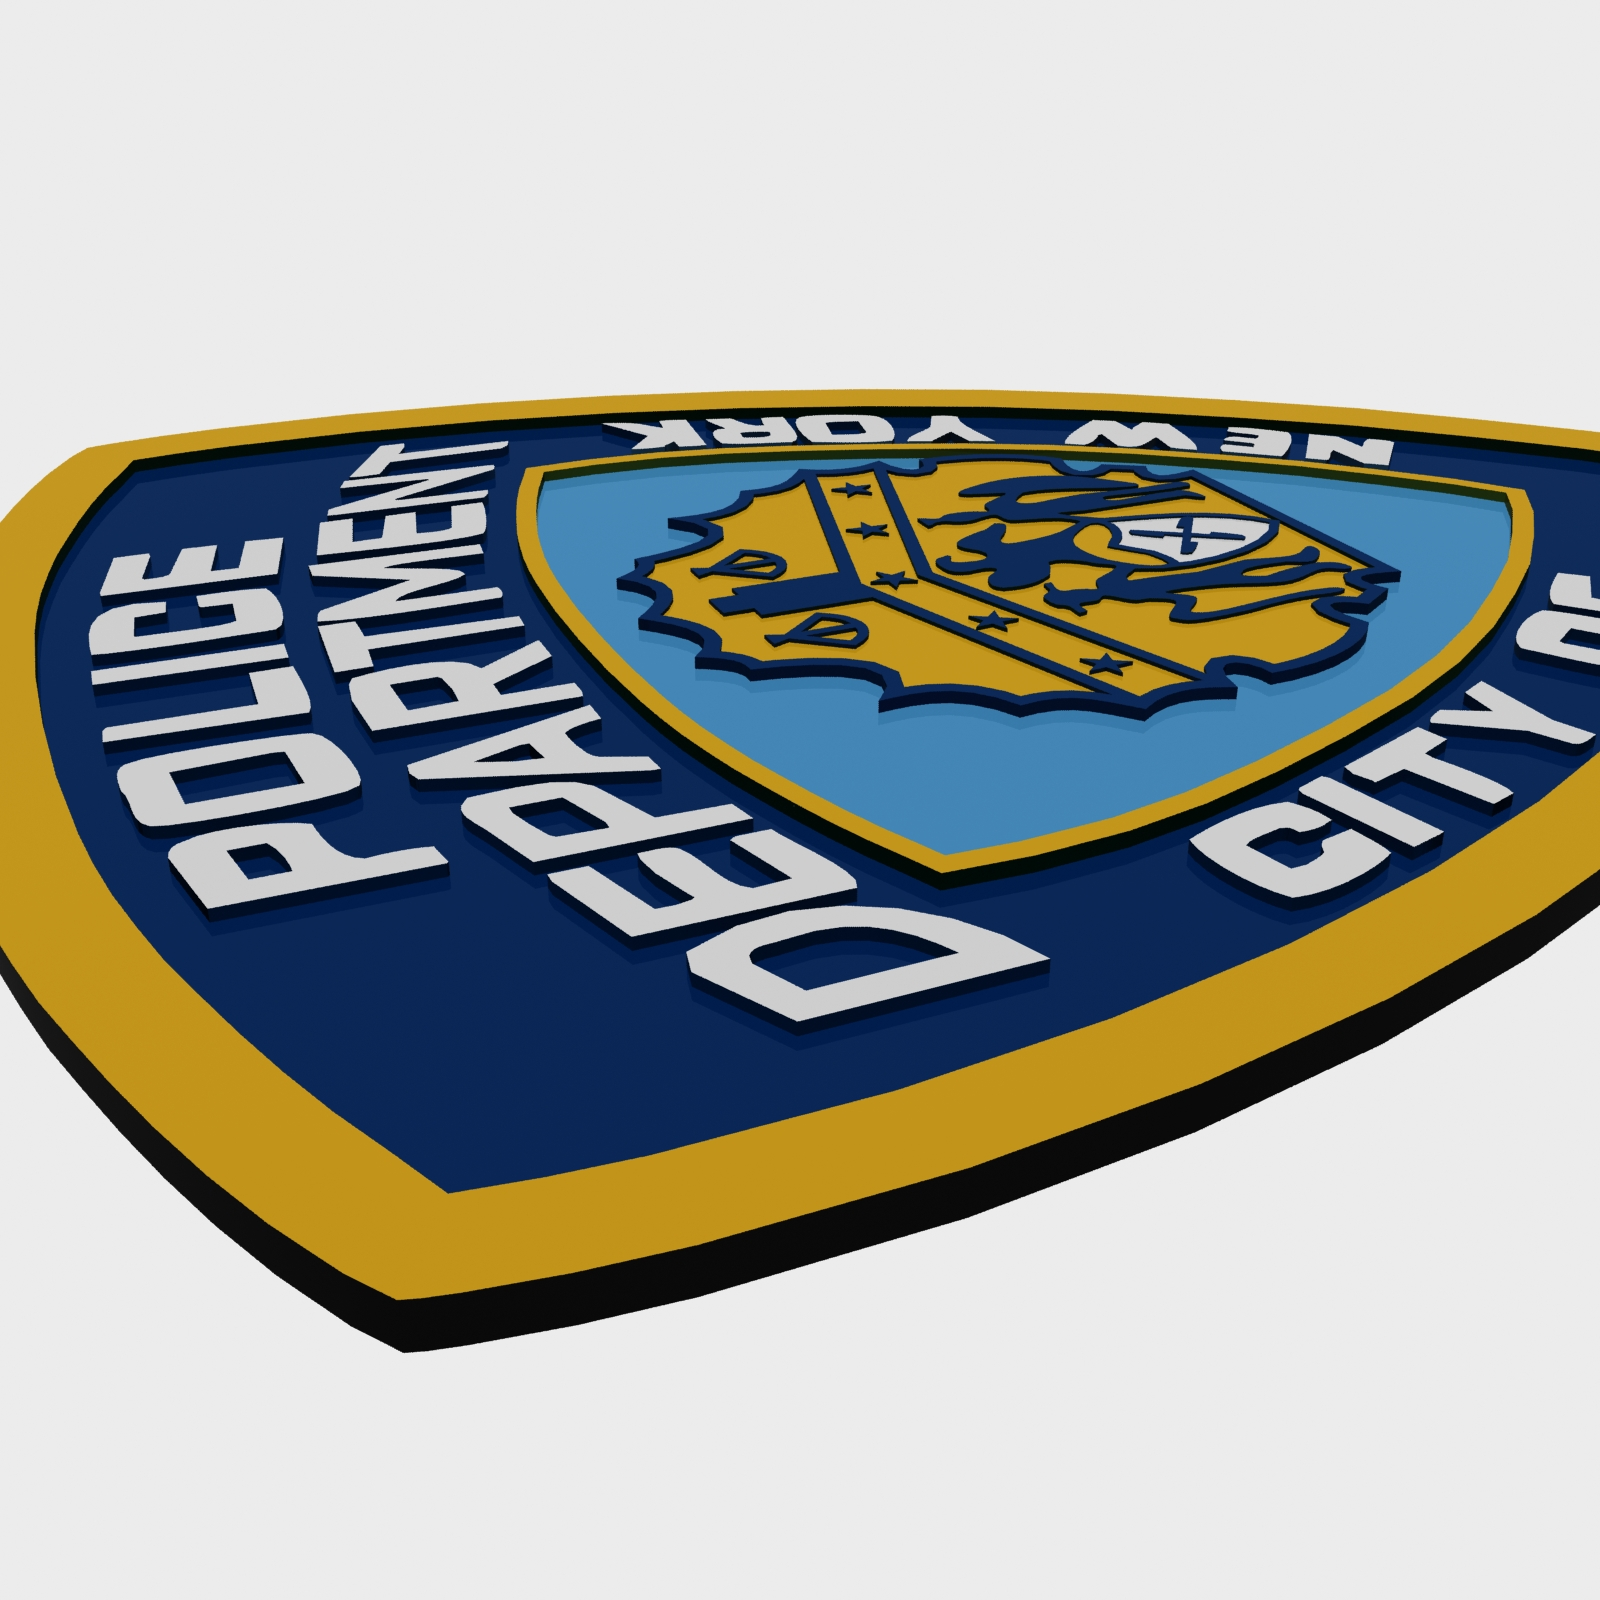 nypd police department logo by polygon3d 3docean rh 3docean net nypd logo flag nypd logo vector